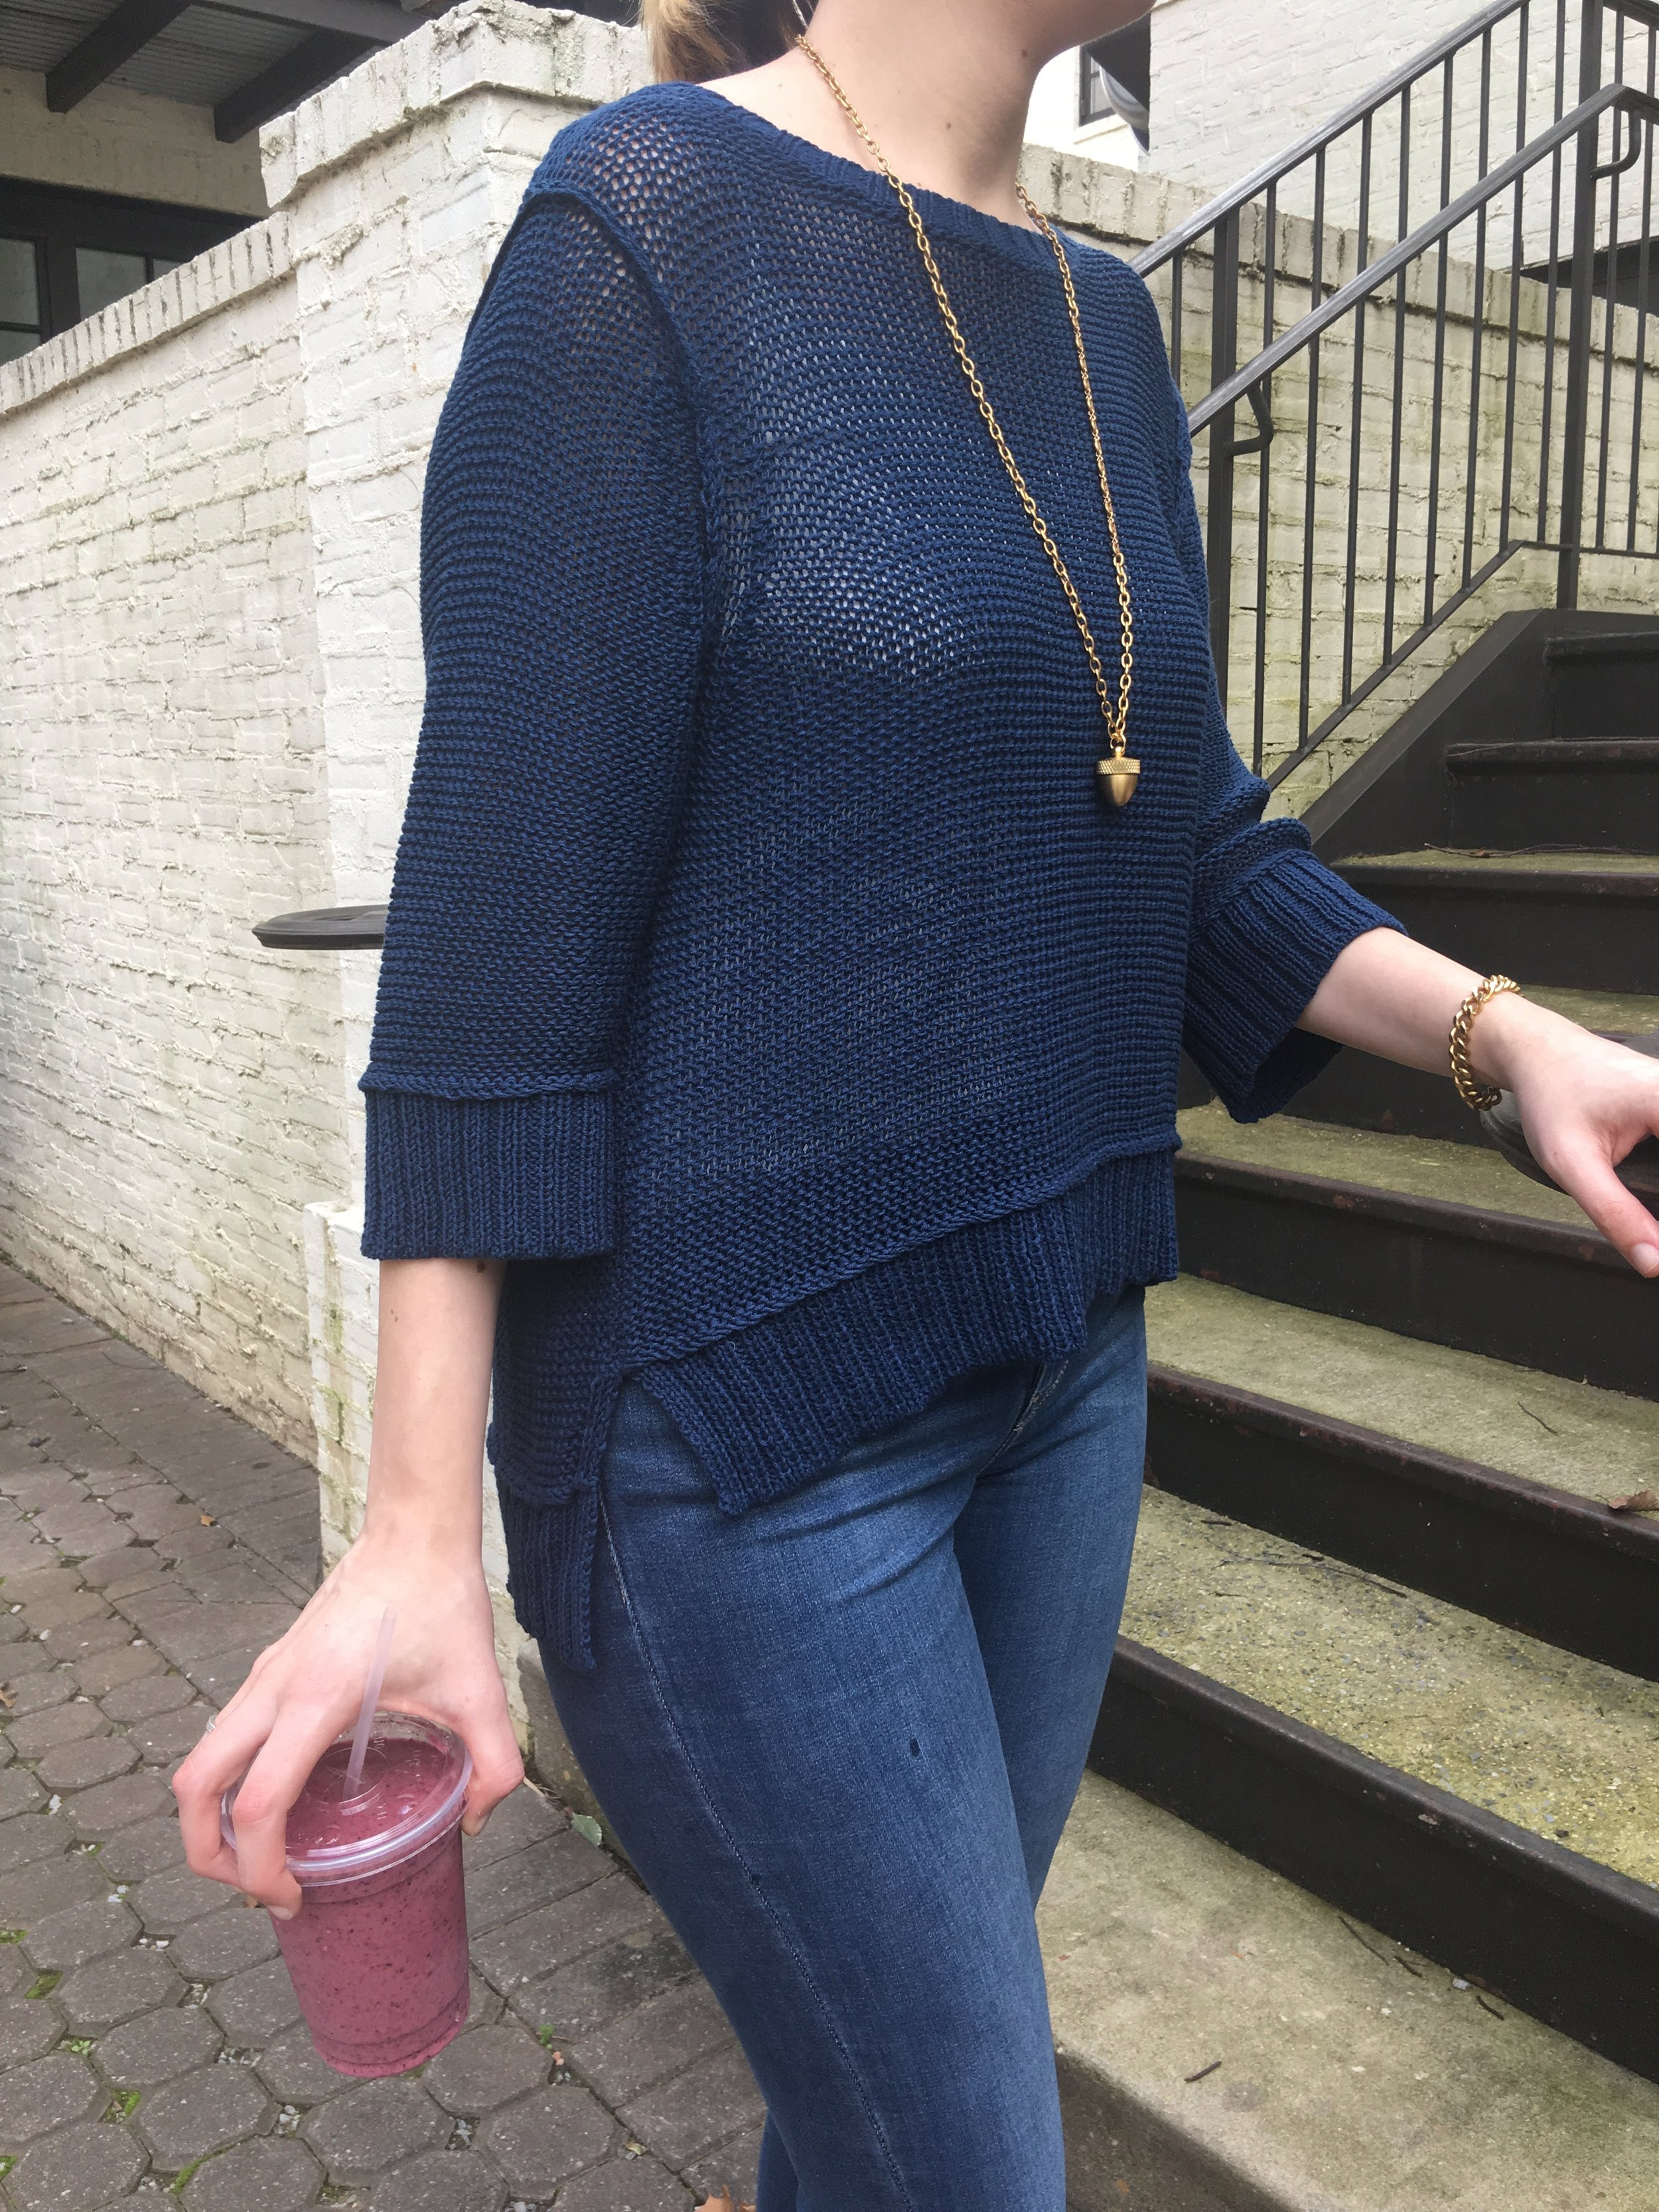 spring sweater in navy